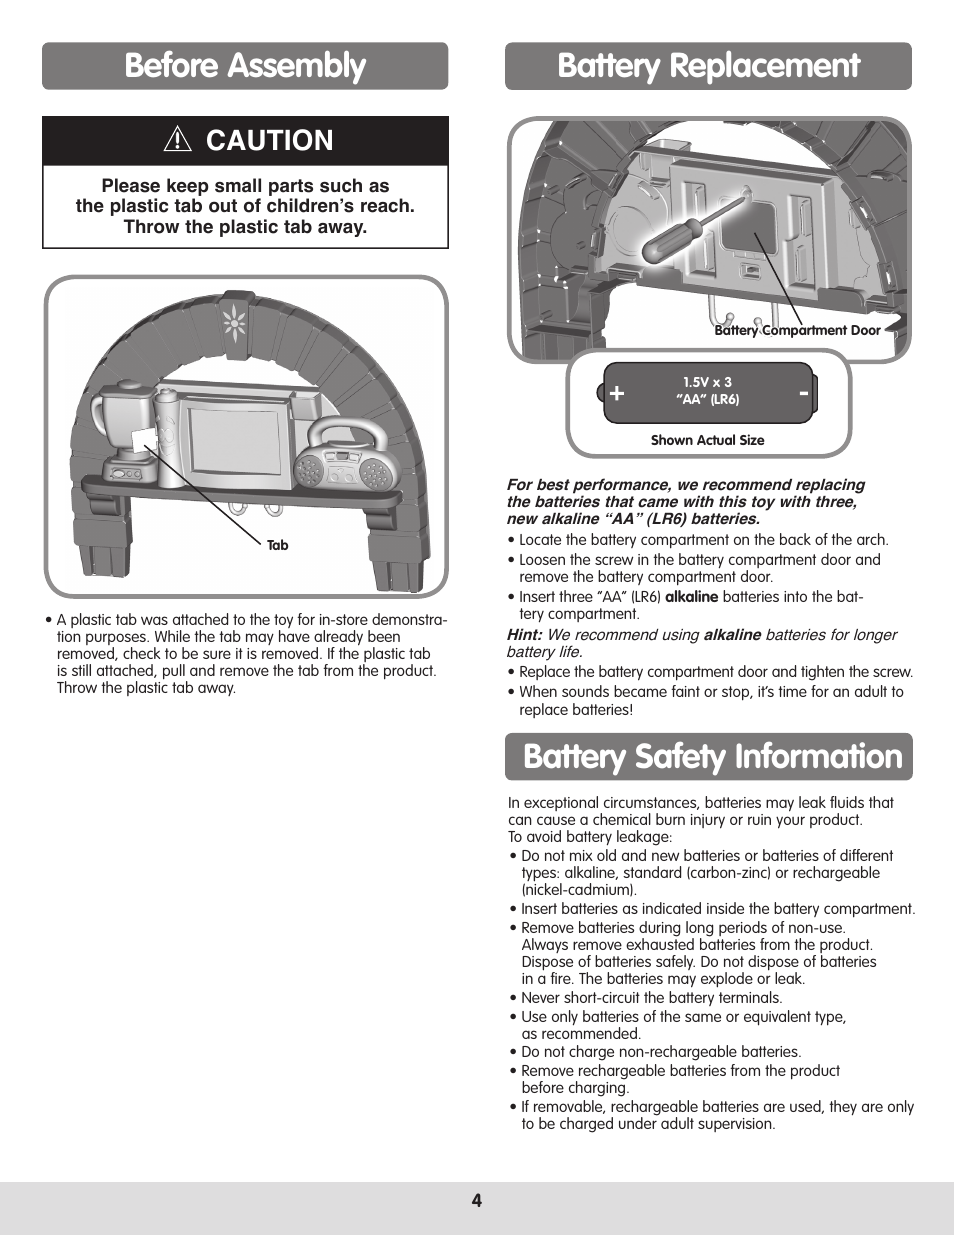 Before assembly, Battery replacement, Battery safety information ...